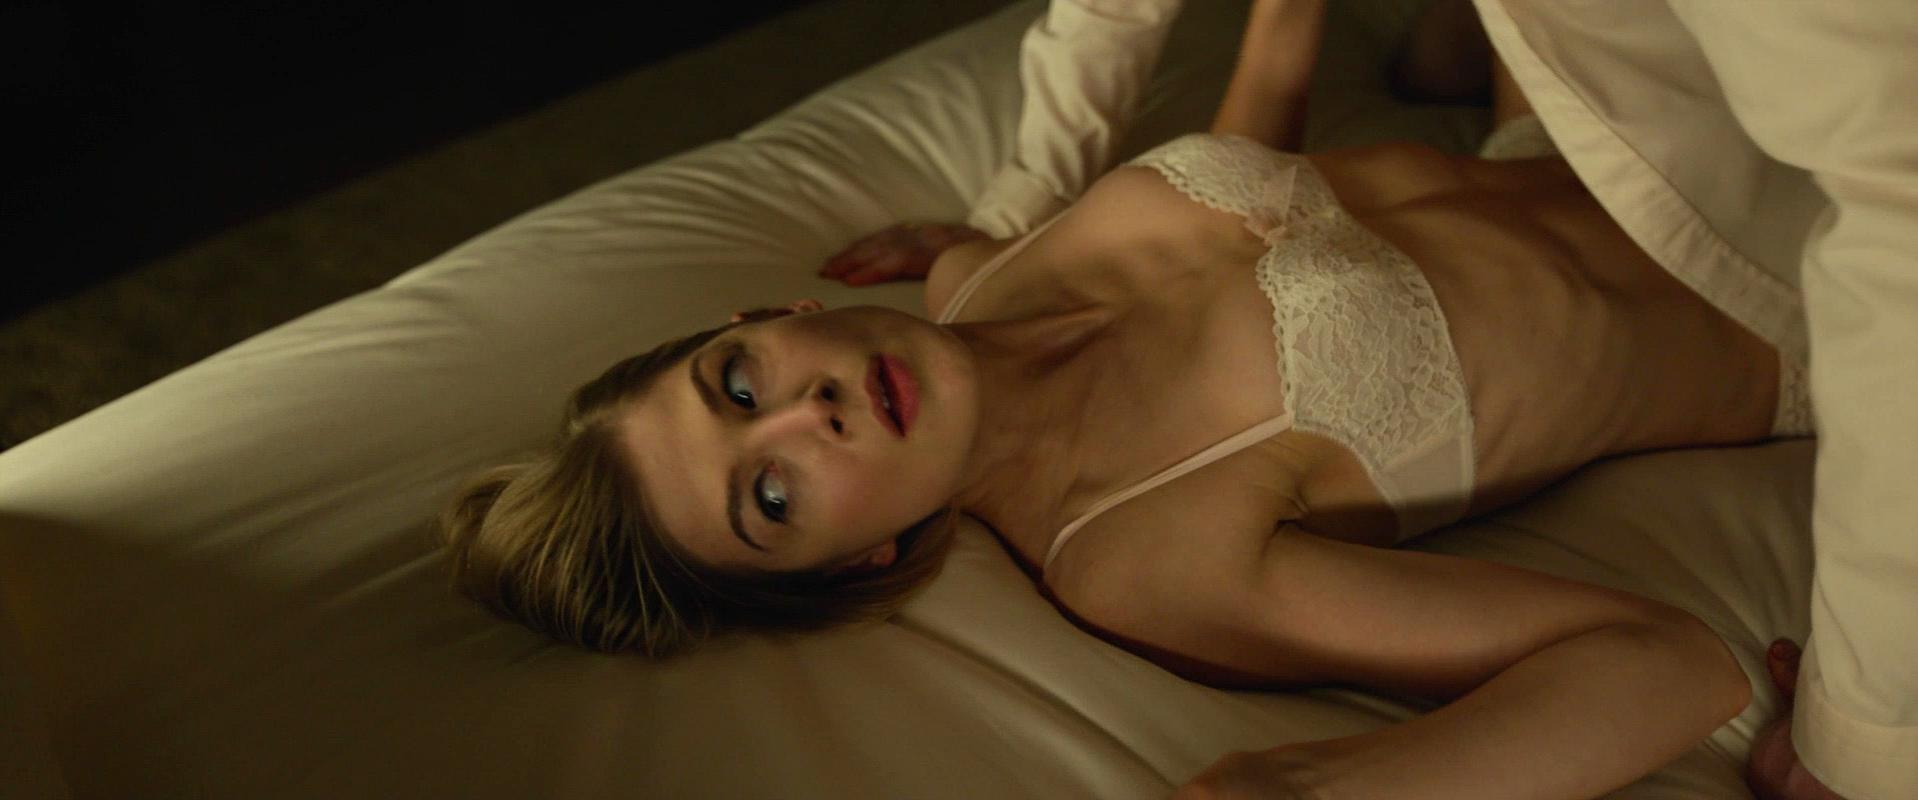 Rosamund Pike nude - Gone Girl (2014)